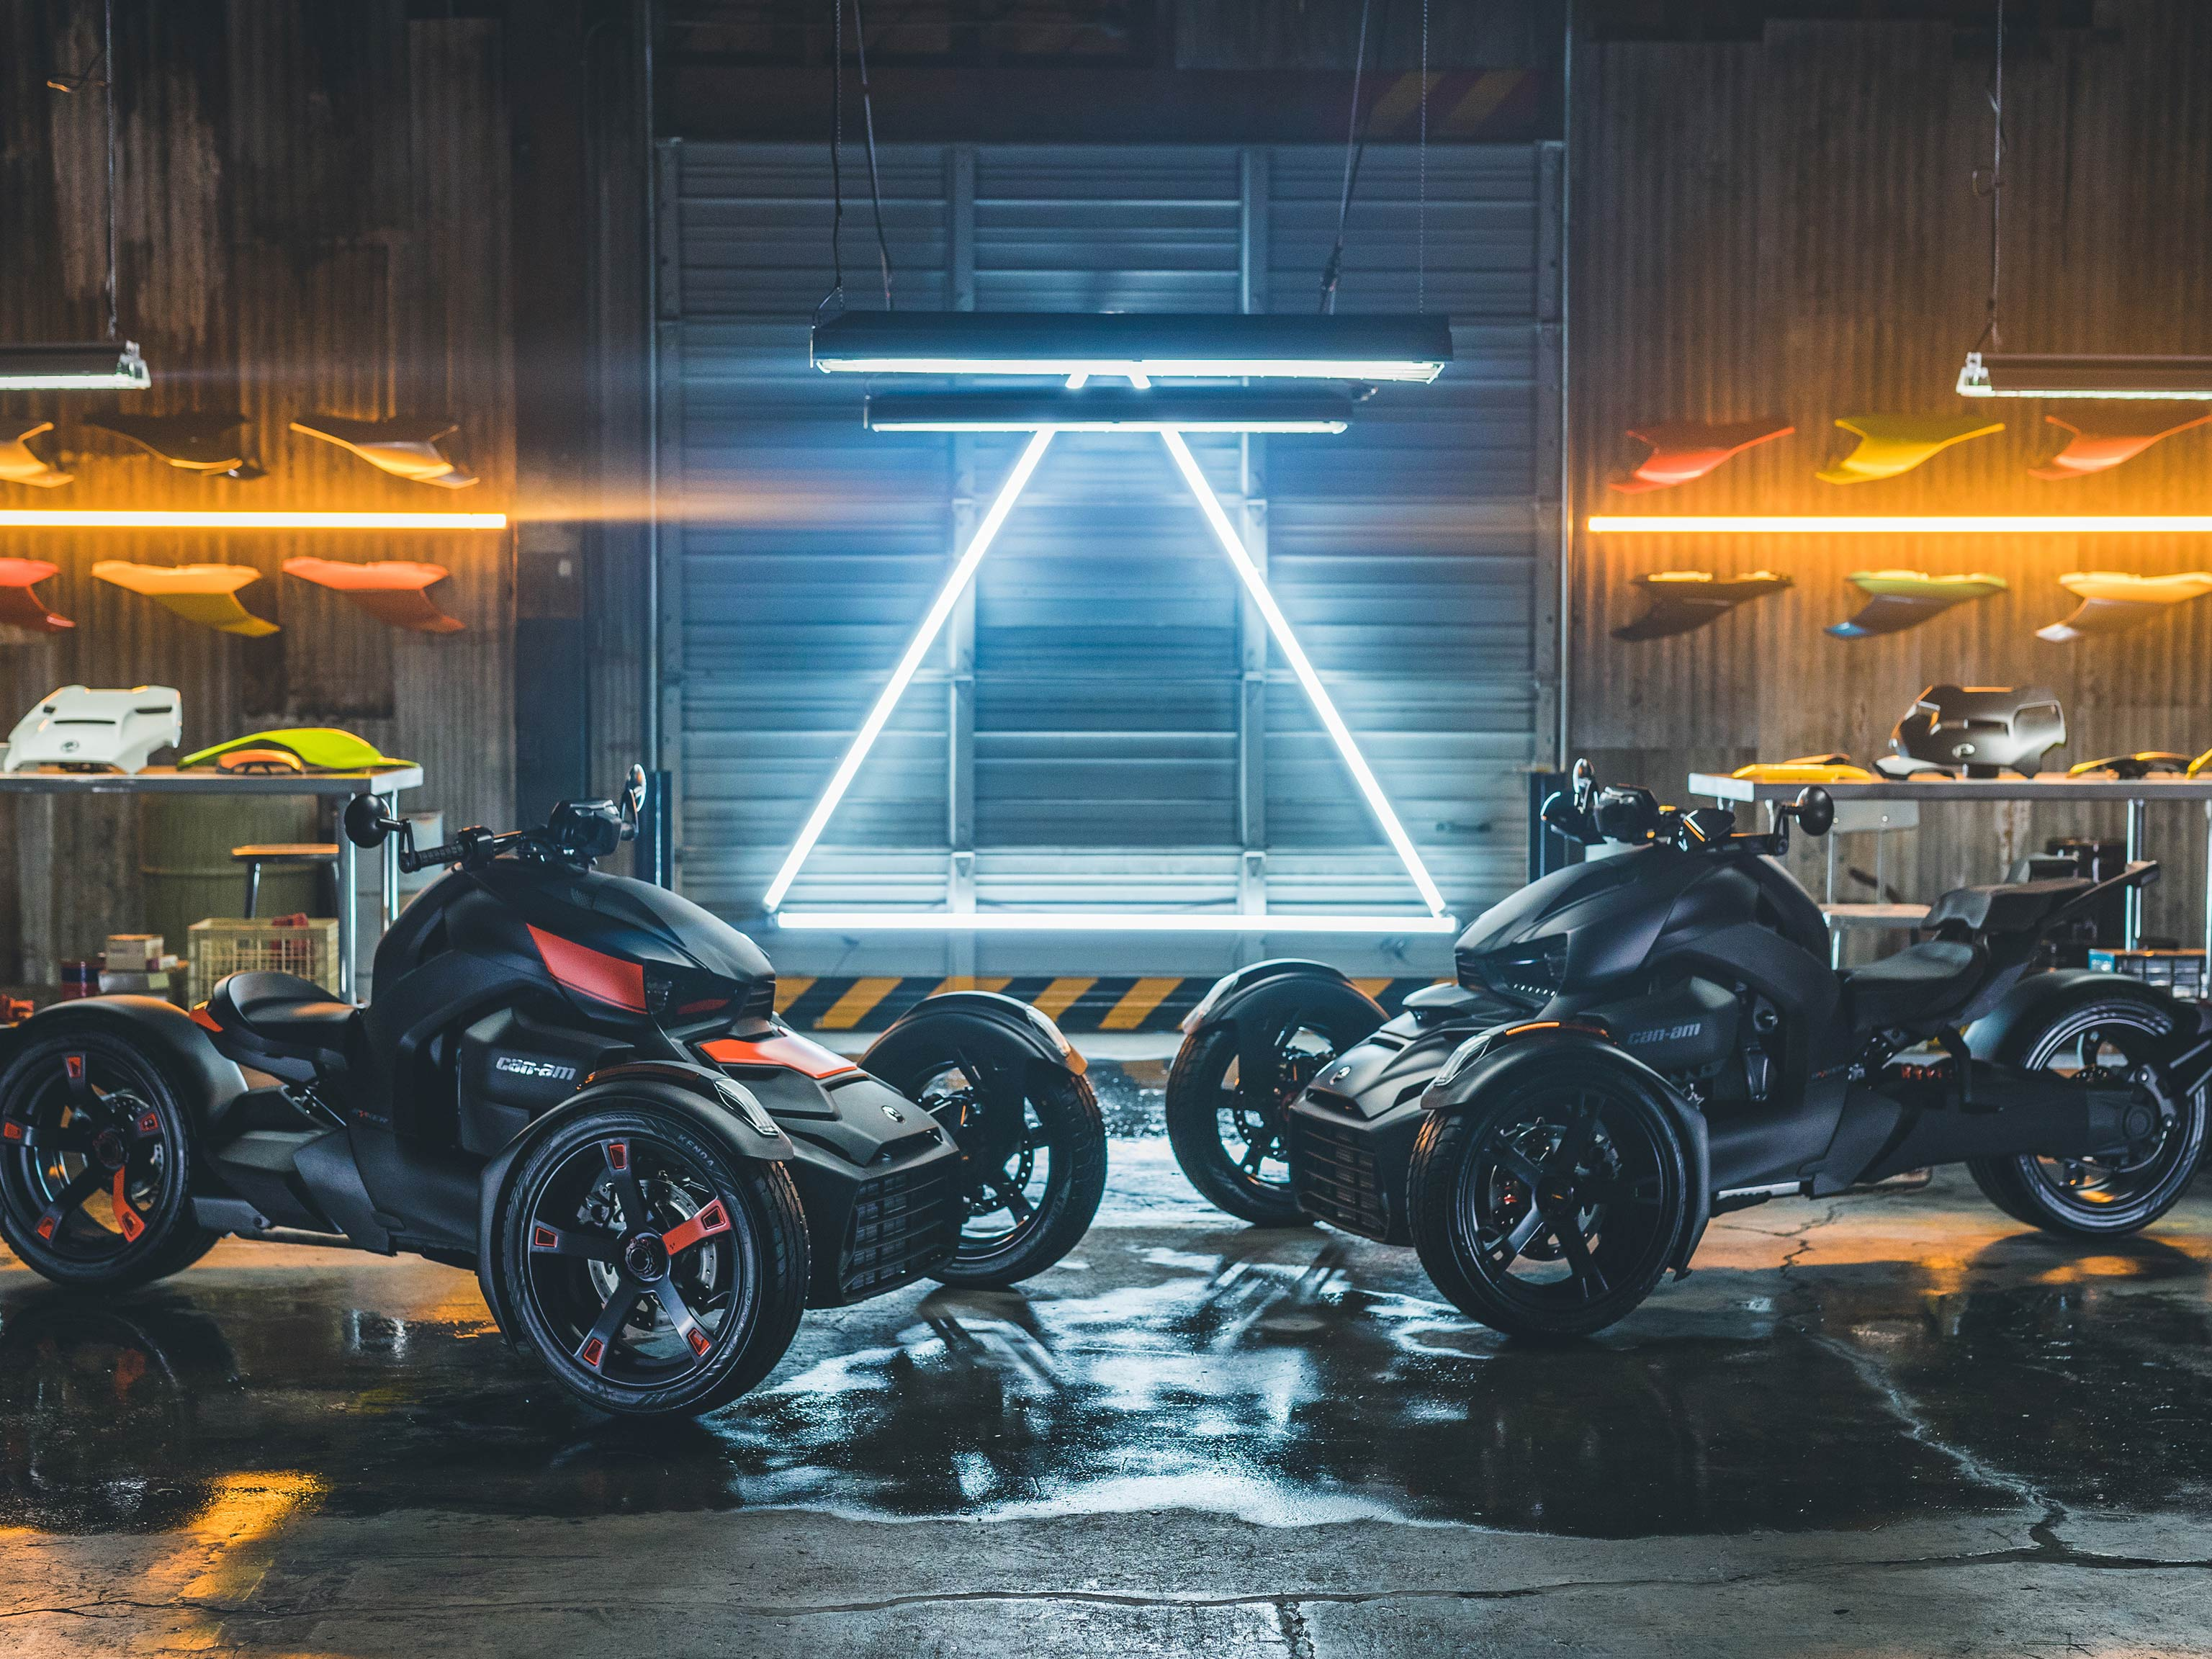 Two Can-Am Ryker facing each other in a garage